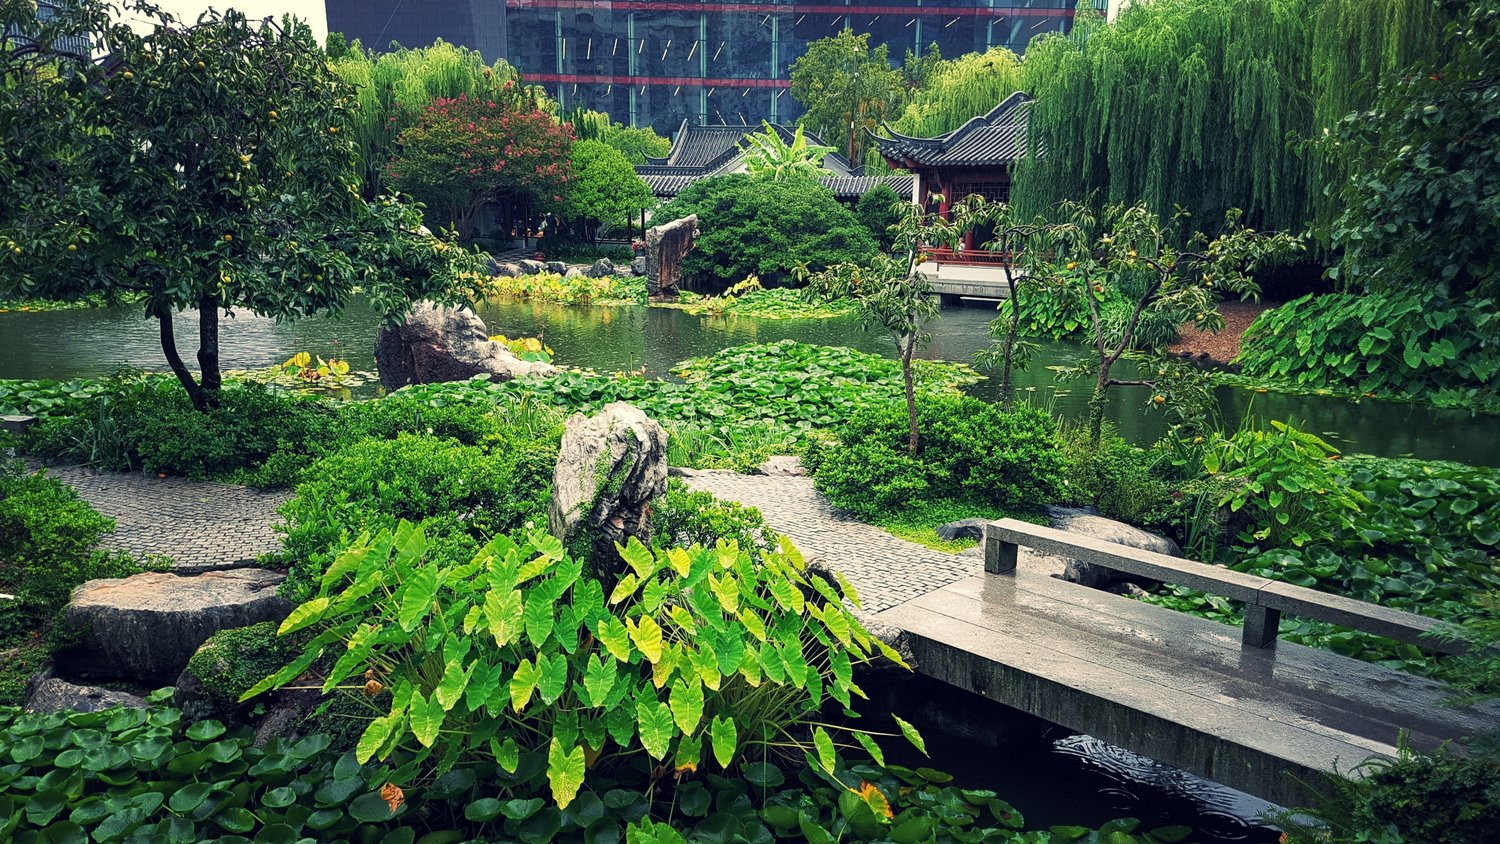 Chinese Garden Landscape Chinese garden of friendship darling harbour sydney curated ground the chinese garden of friendship in darling harbour sydney was established in 1988 as a centenary gift from sydneys sister city guangzhou in southern workwithnaturefo